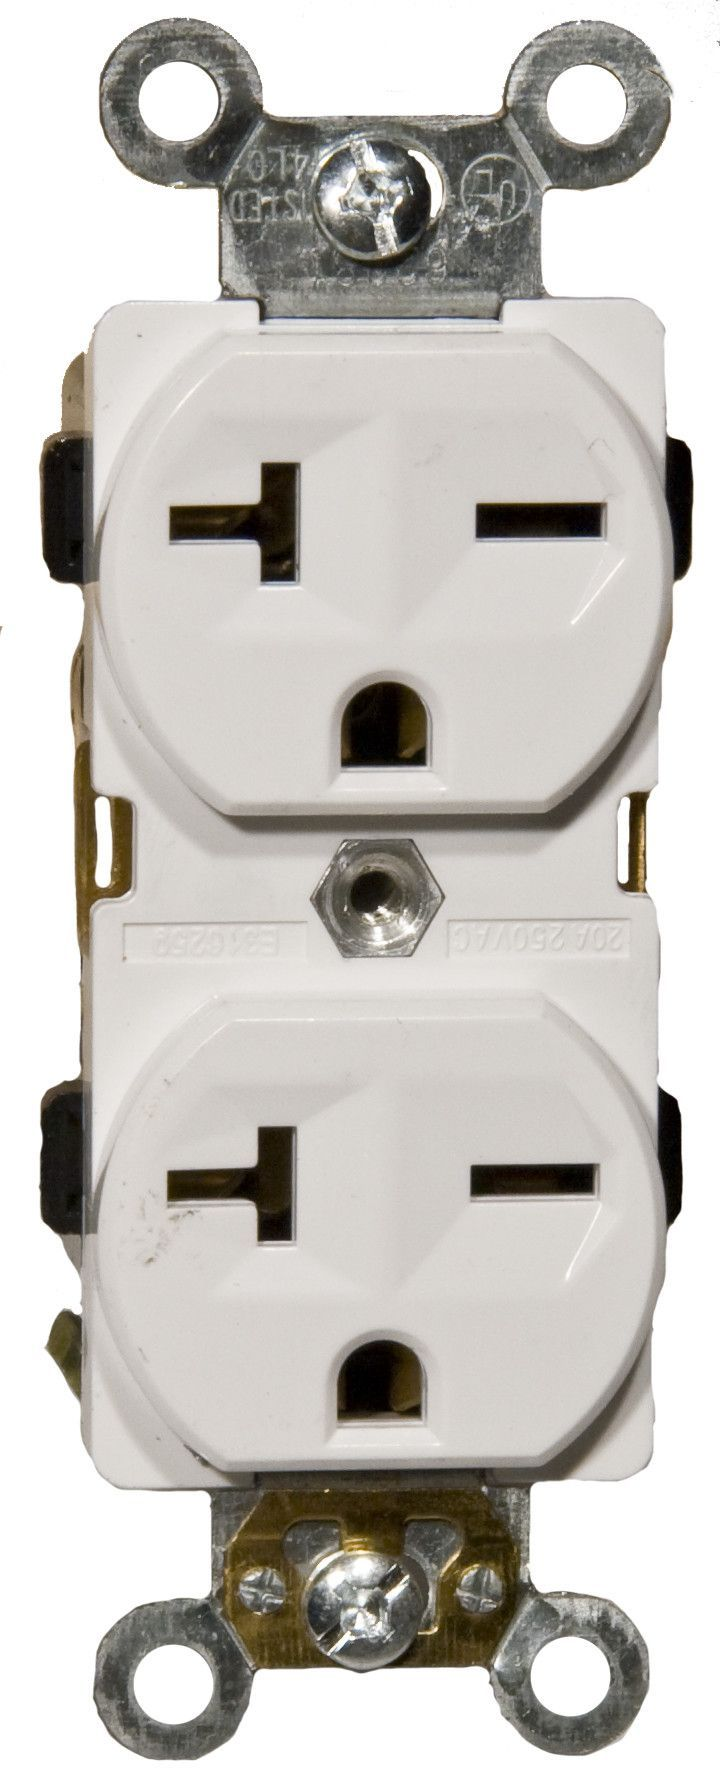 20A-250V Industrial Grade Duplex Receptacle in White (Set of 3)